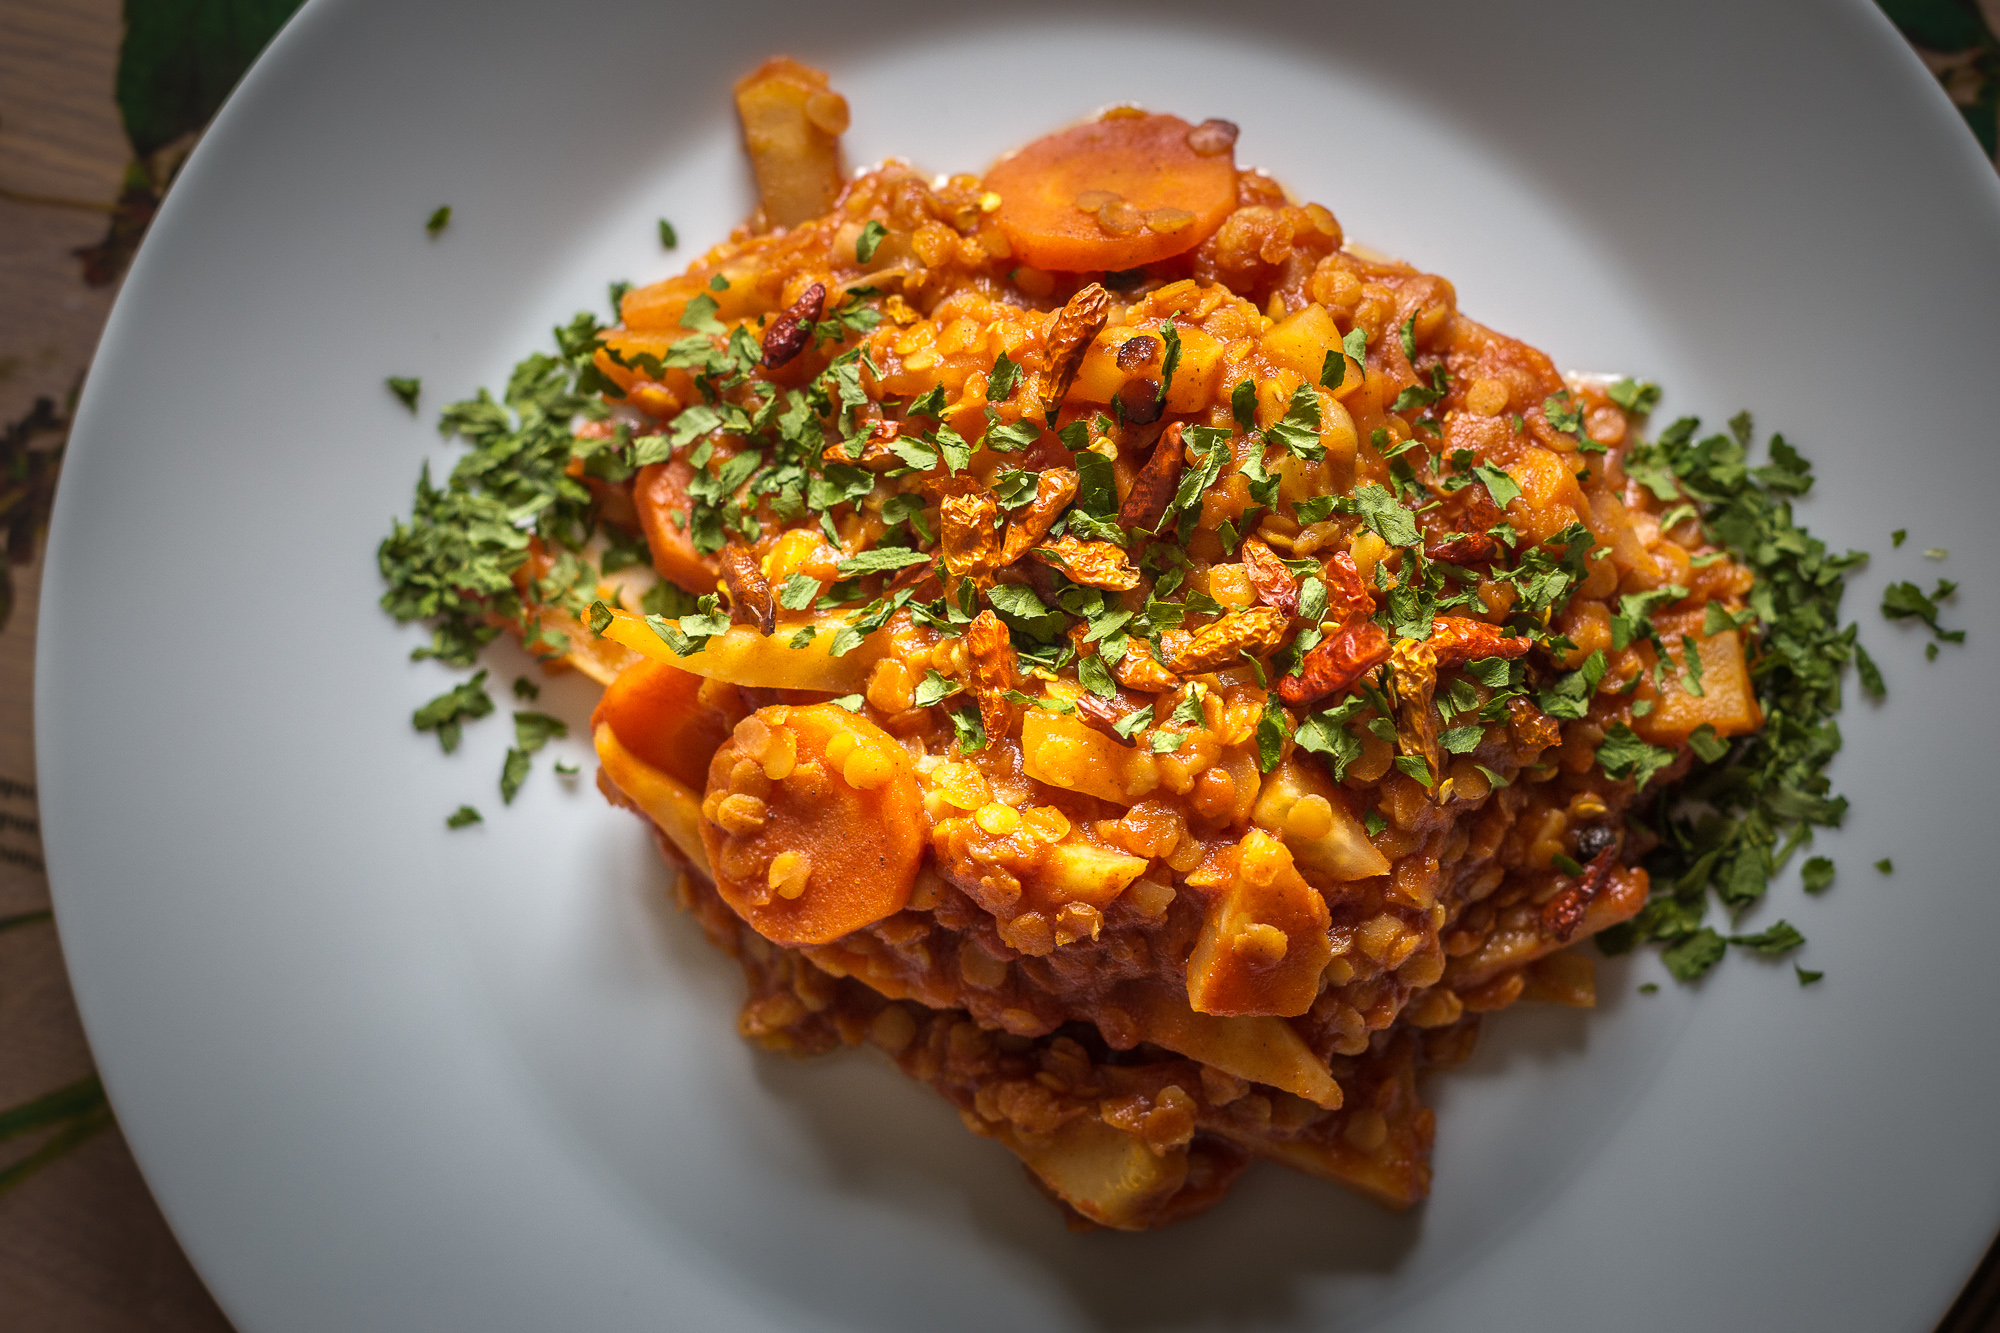 red lentil with carrot and dryed herbs